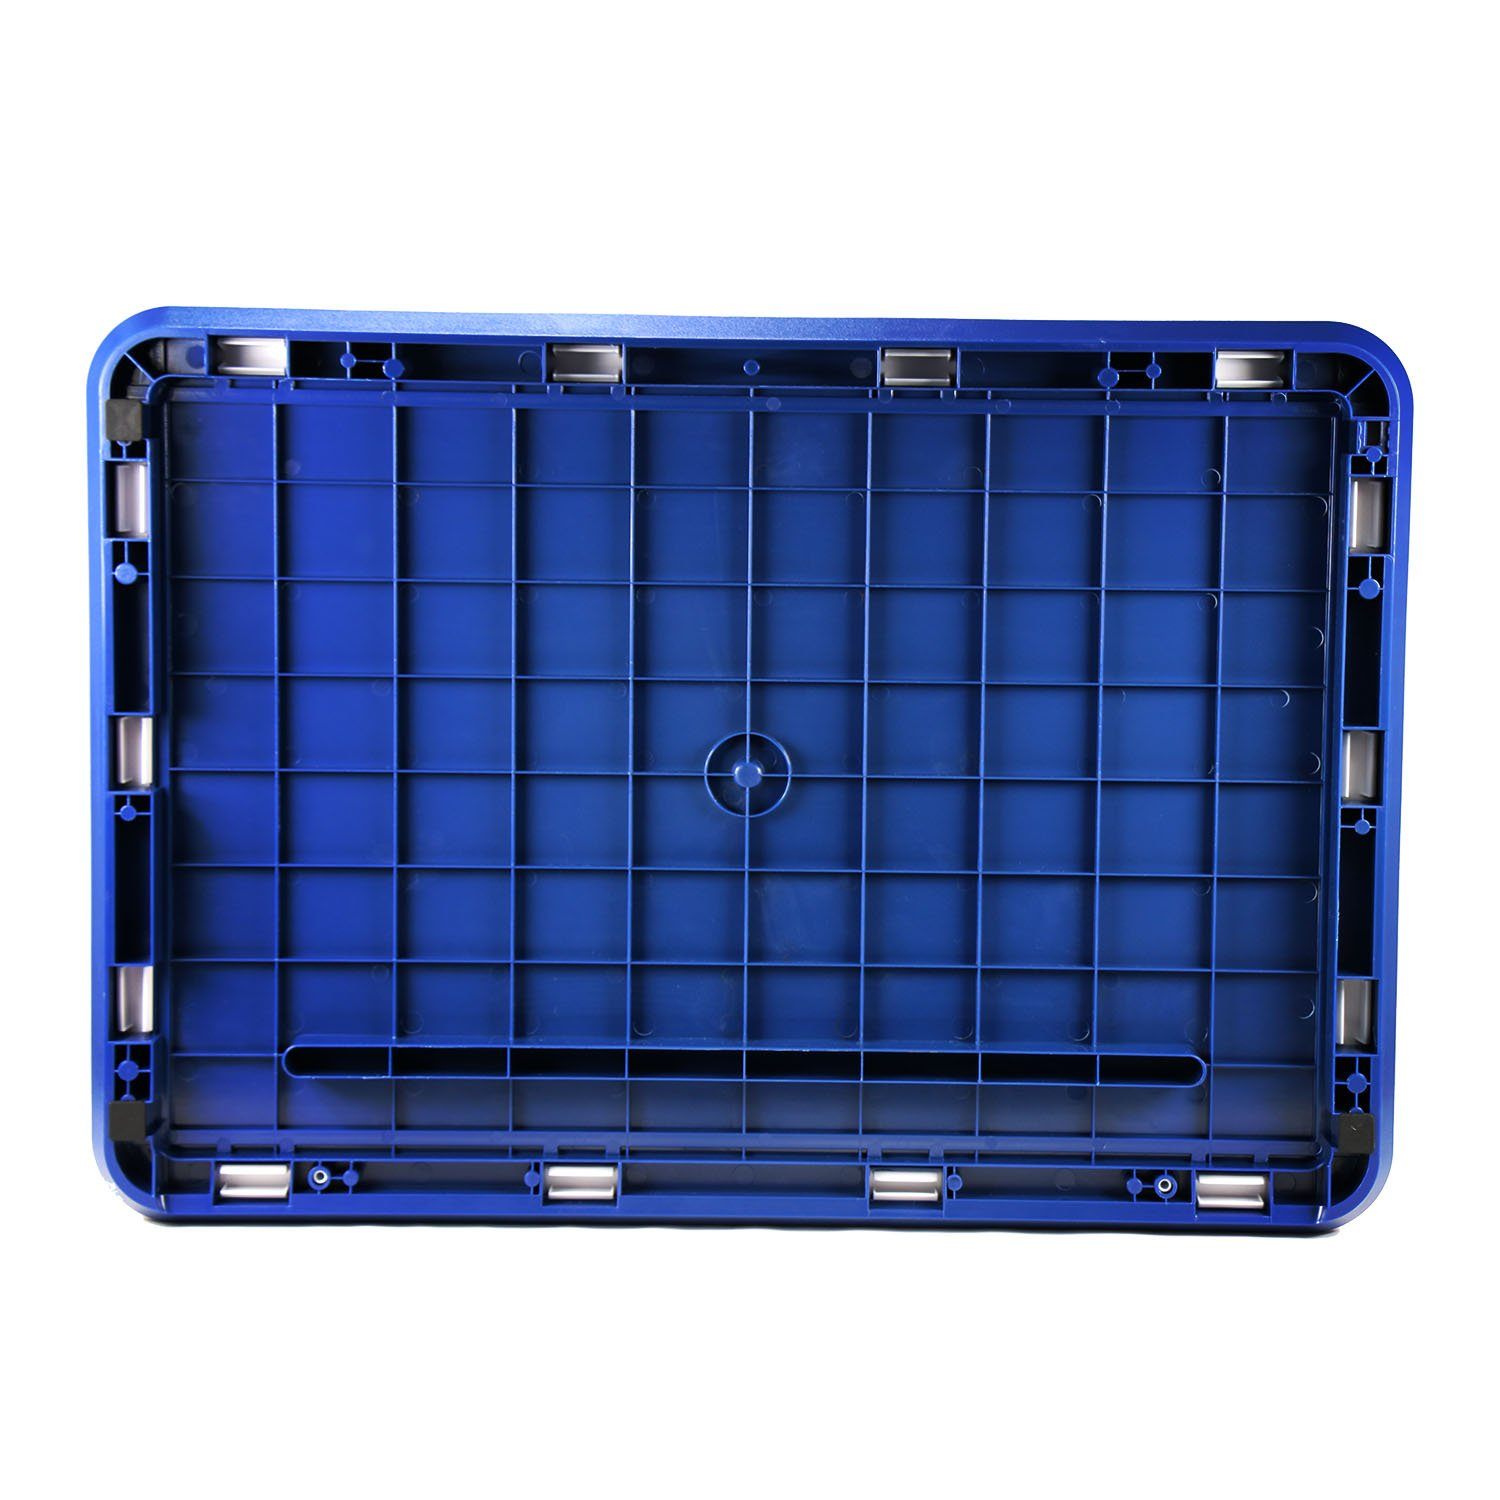 Storage Container Stackable Bins with Digit Lock ABS Safety Large Capacity 78L (blue)